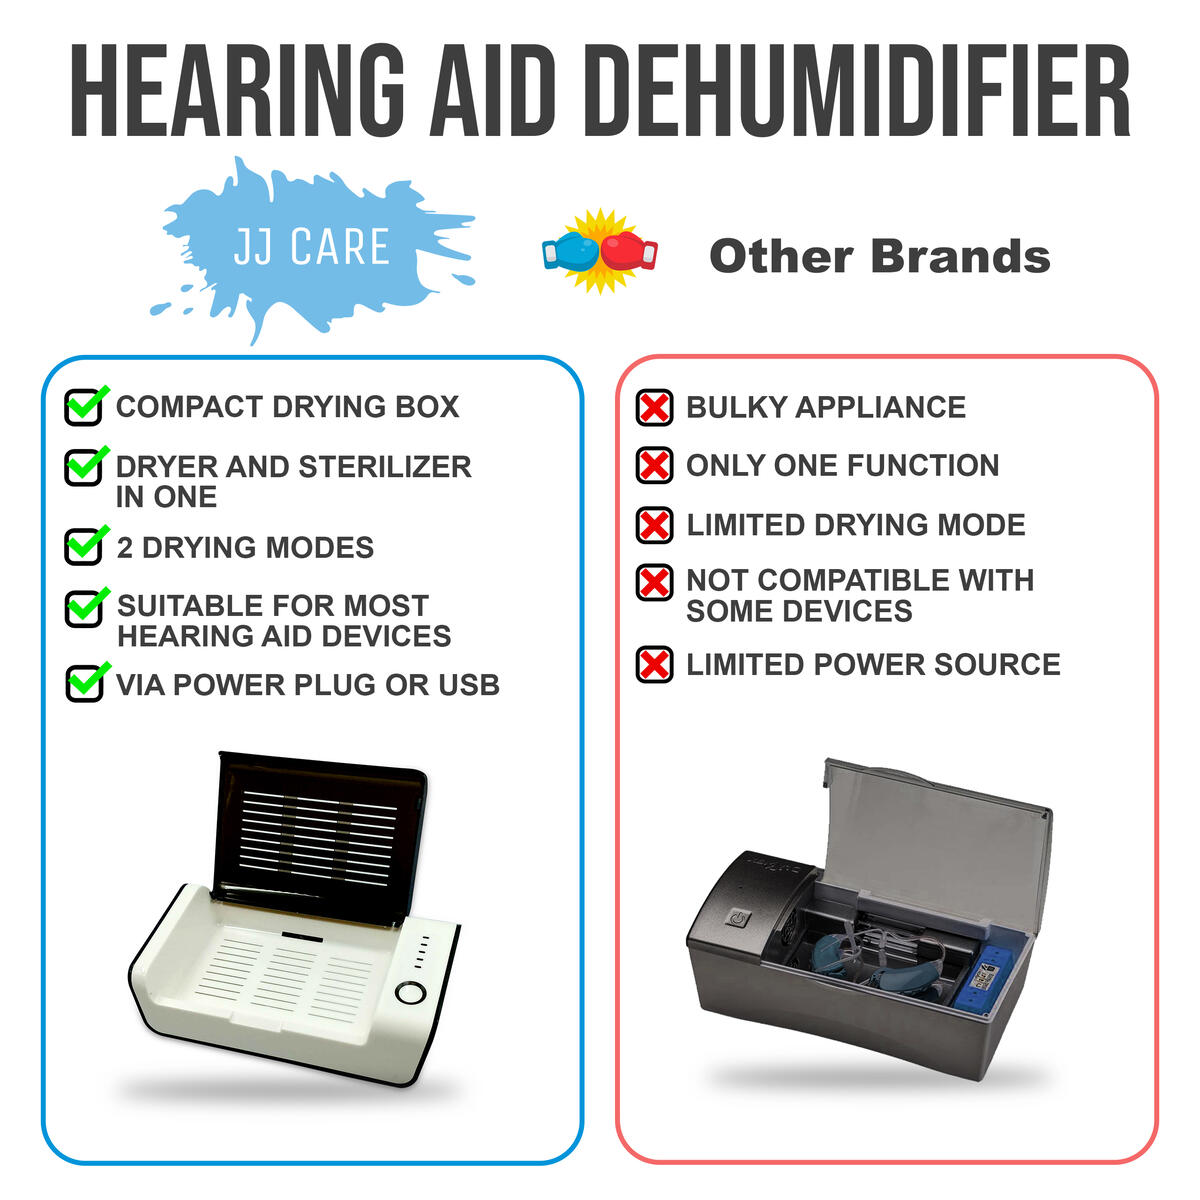 JJ CARE [Upgraded] Hearing Aid Dryer Dehumidifier, Storage Box & Dryer Box for Hearing Aids with Cleaning Brush & Adapter, Hearing Aid Dehumidifier Moisture Remover, Heating Temperature 122F